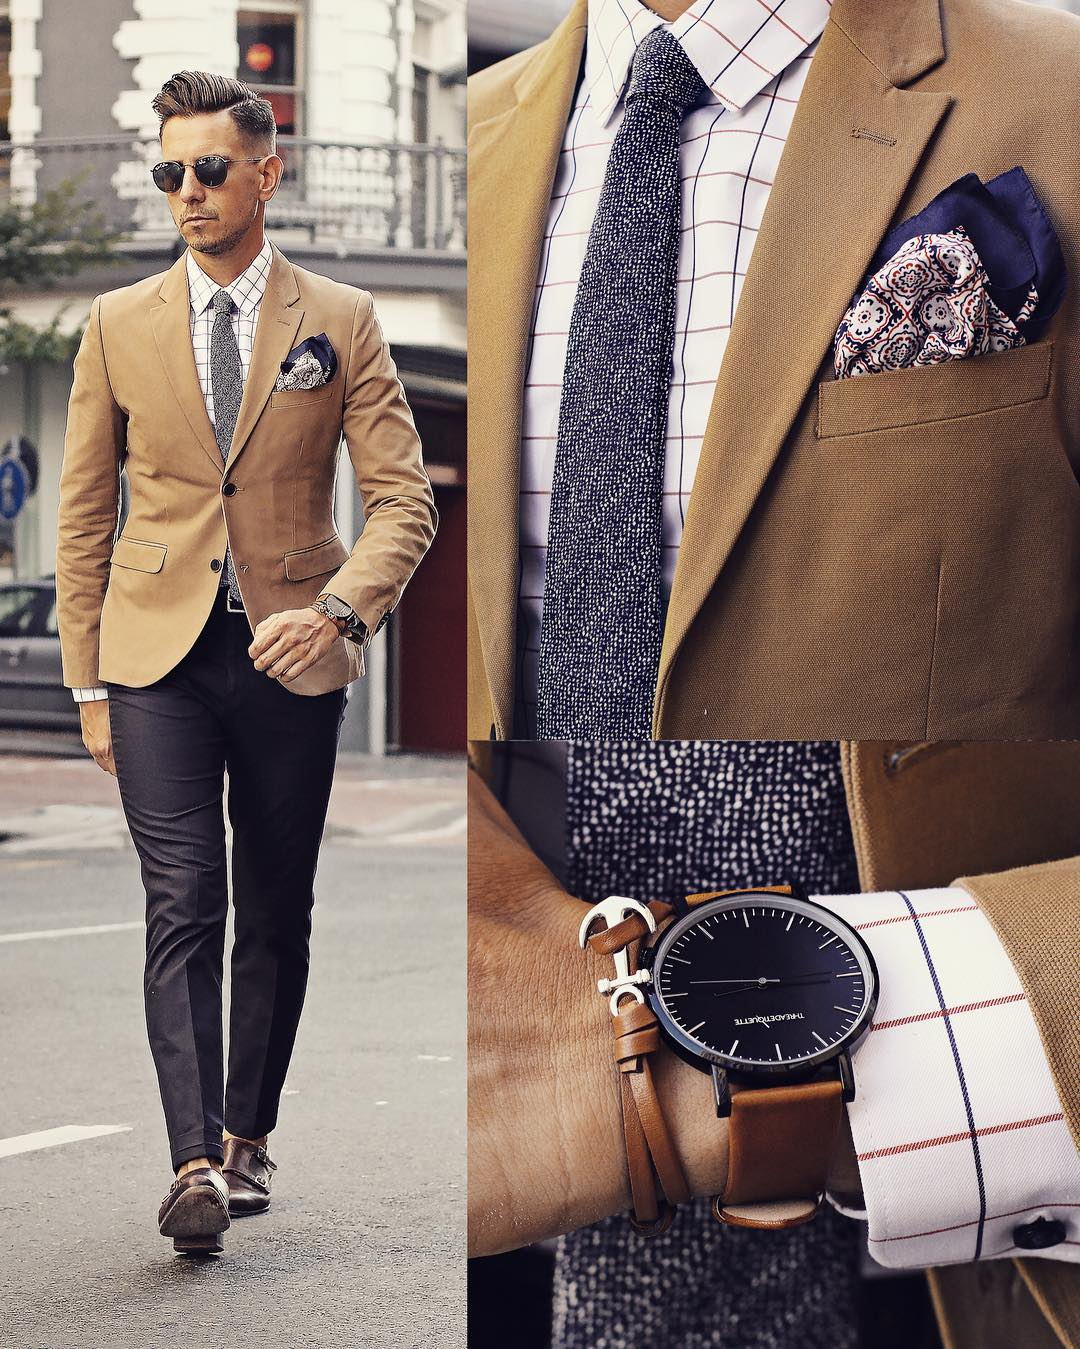 Suit , Pokect Square And Watch Combinations For Men